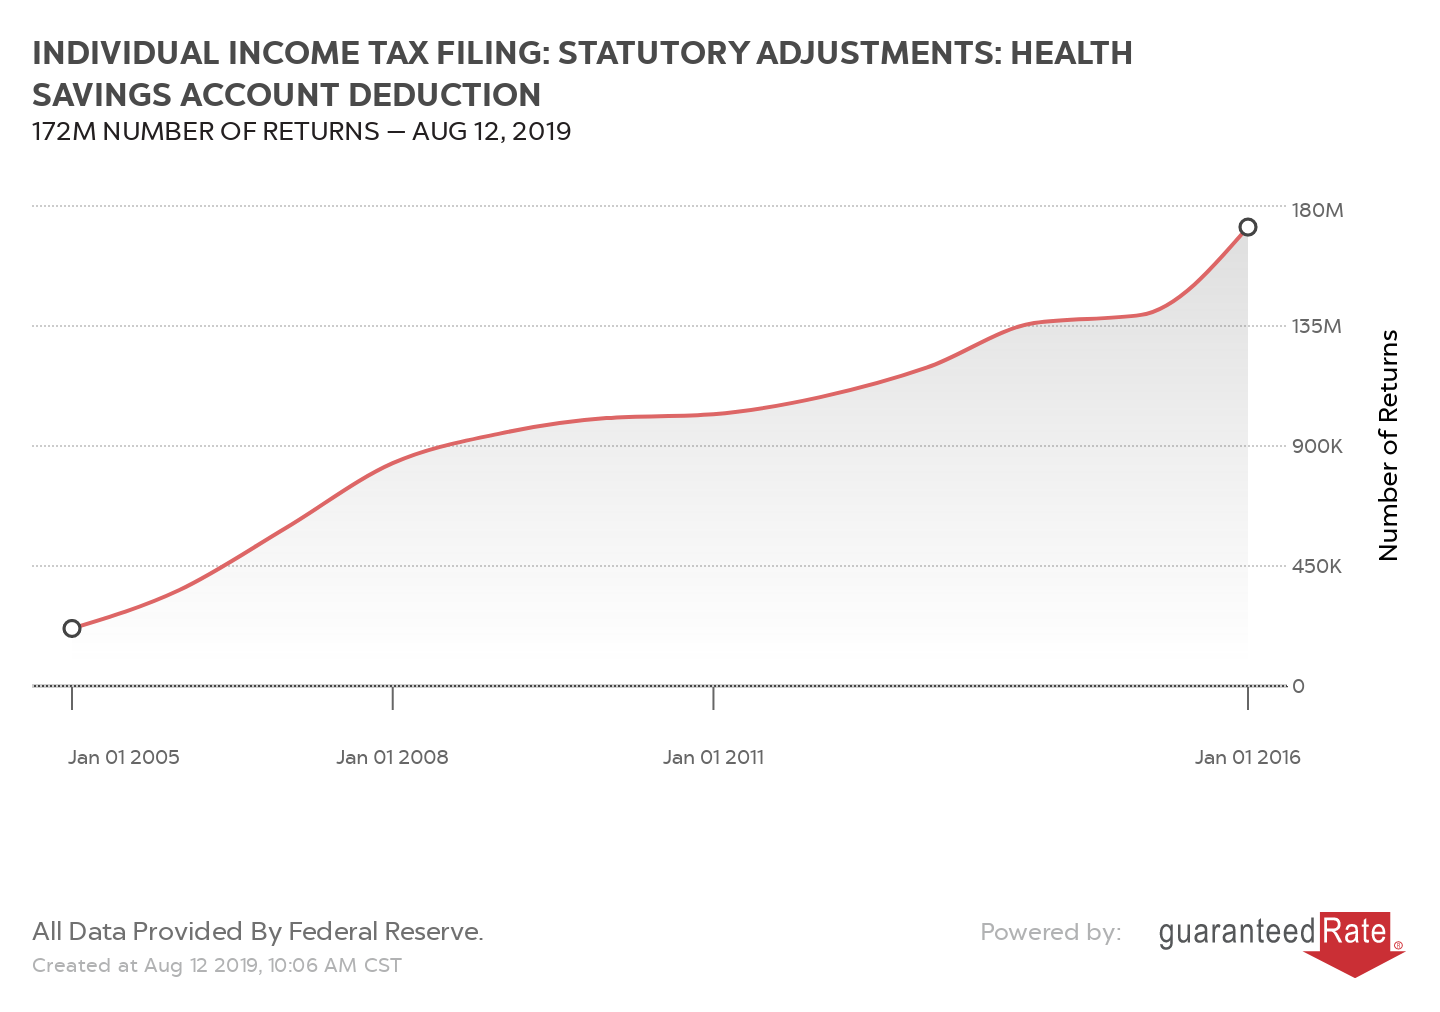 INDIVIDUAL INCOME TAX FILING: STATUTORY ADJUSTMENTS: HEALTH SAVINGS ACCOUNT DEDUCTION